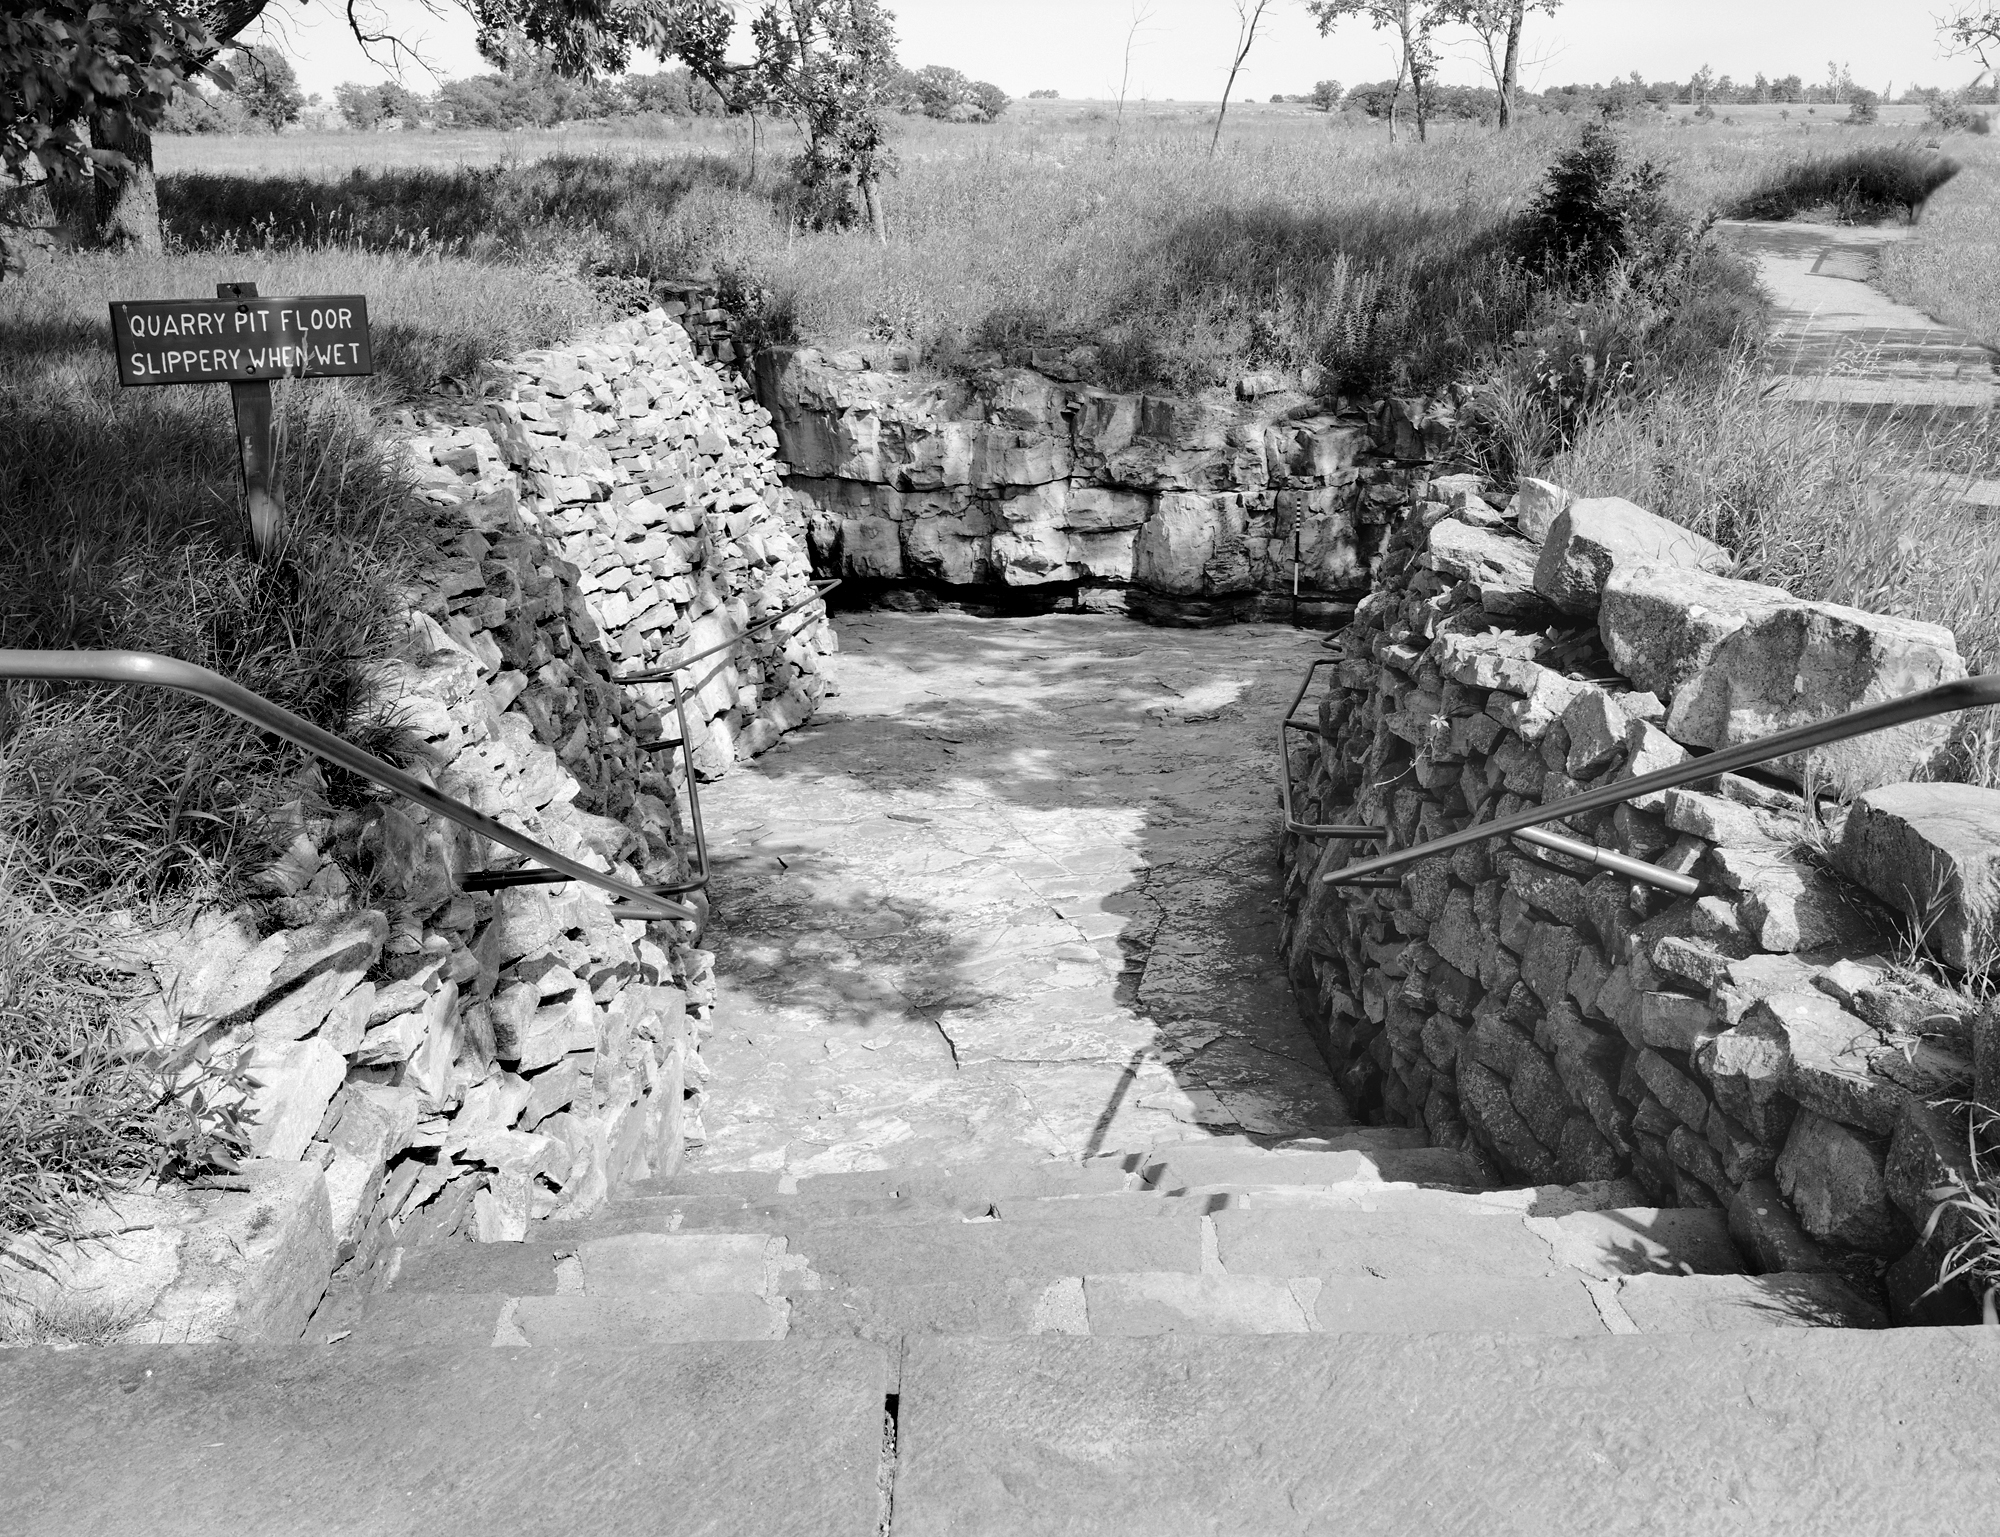 HAER MN-120-02 Pipestone National Monument Exhibit Quarry (Please credit Daniel R. Pratt and the Historic American Engineering Record)